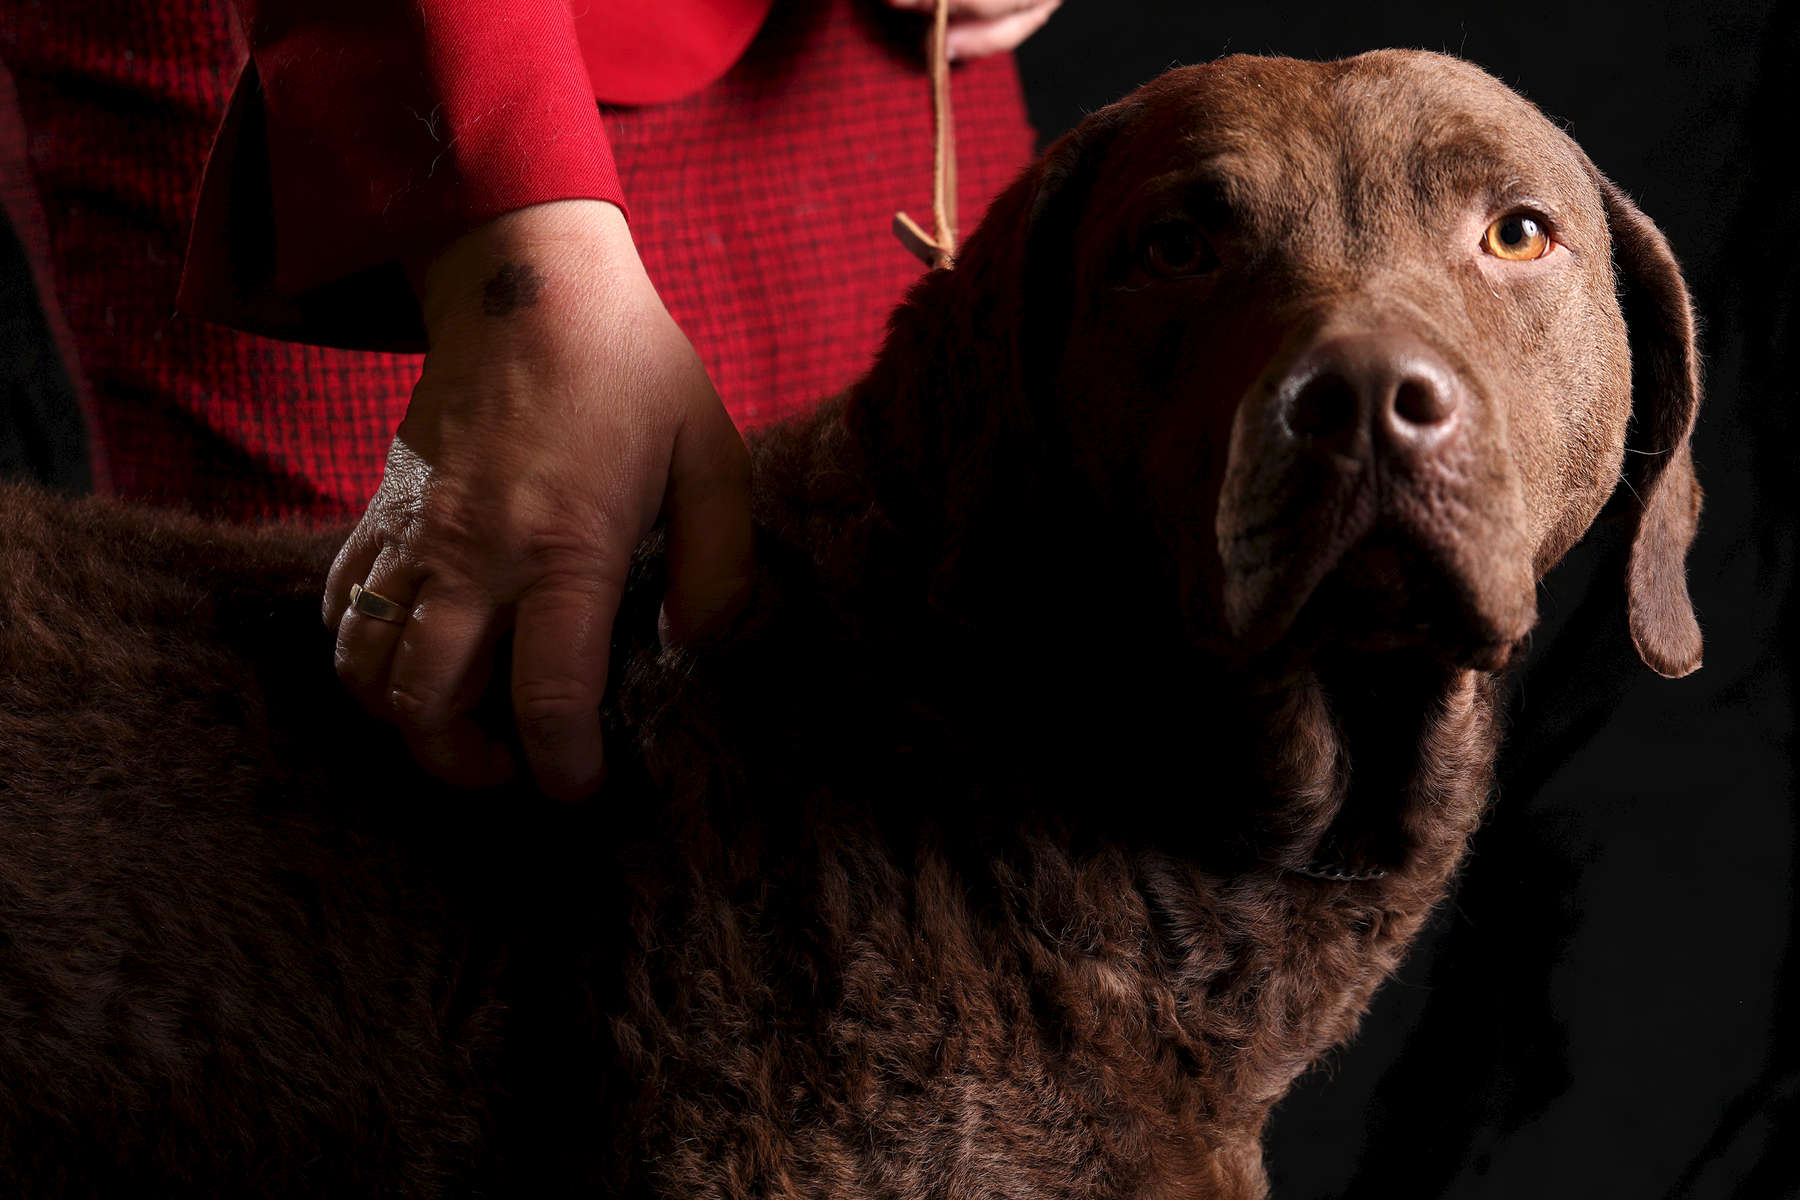 Monday, a 4-year-old Chesapeake Bay Retriever, shown by Meredith Hinnenkamp